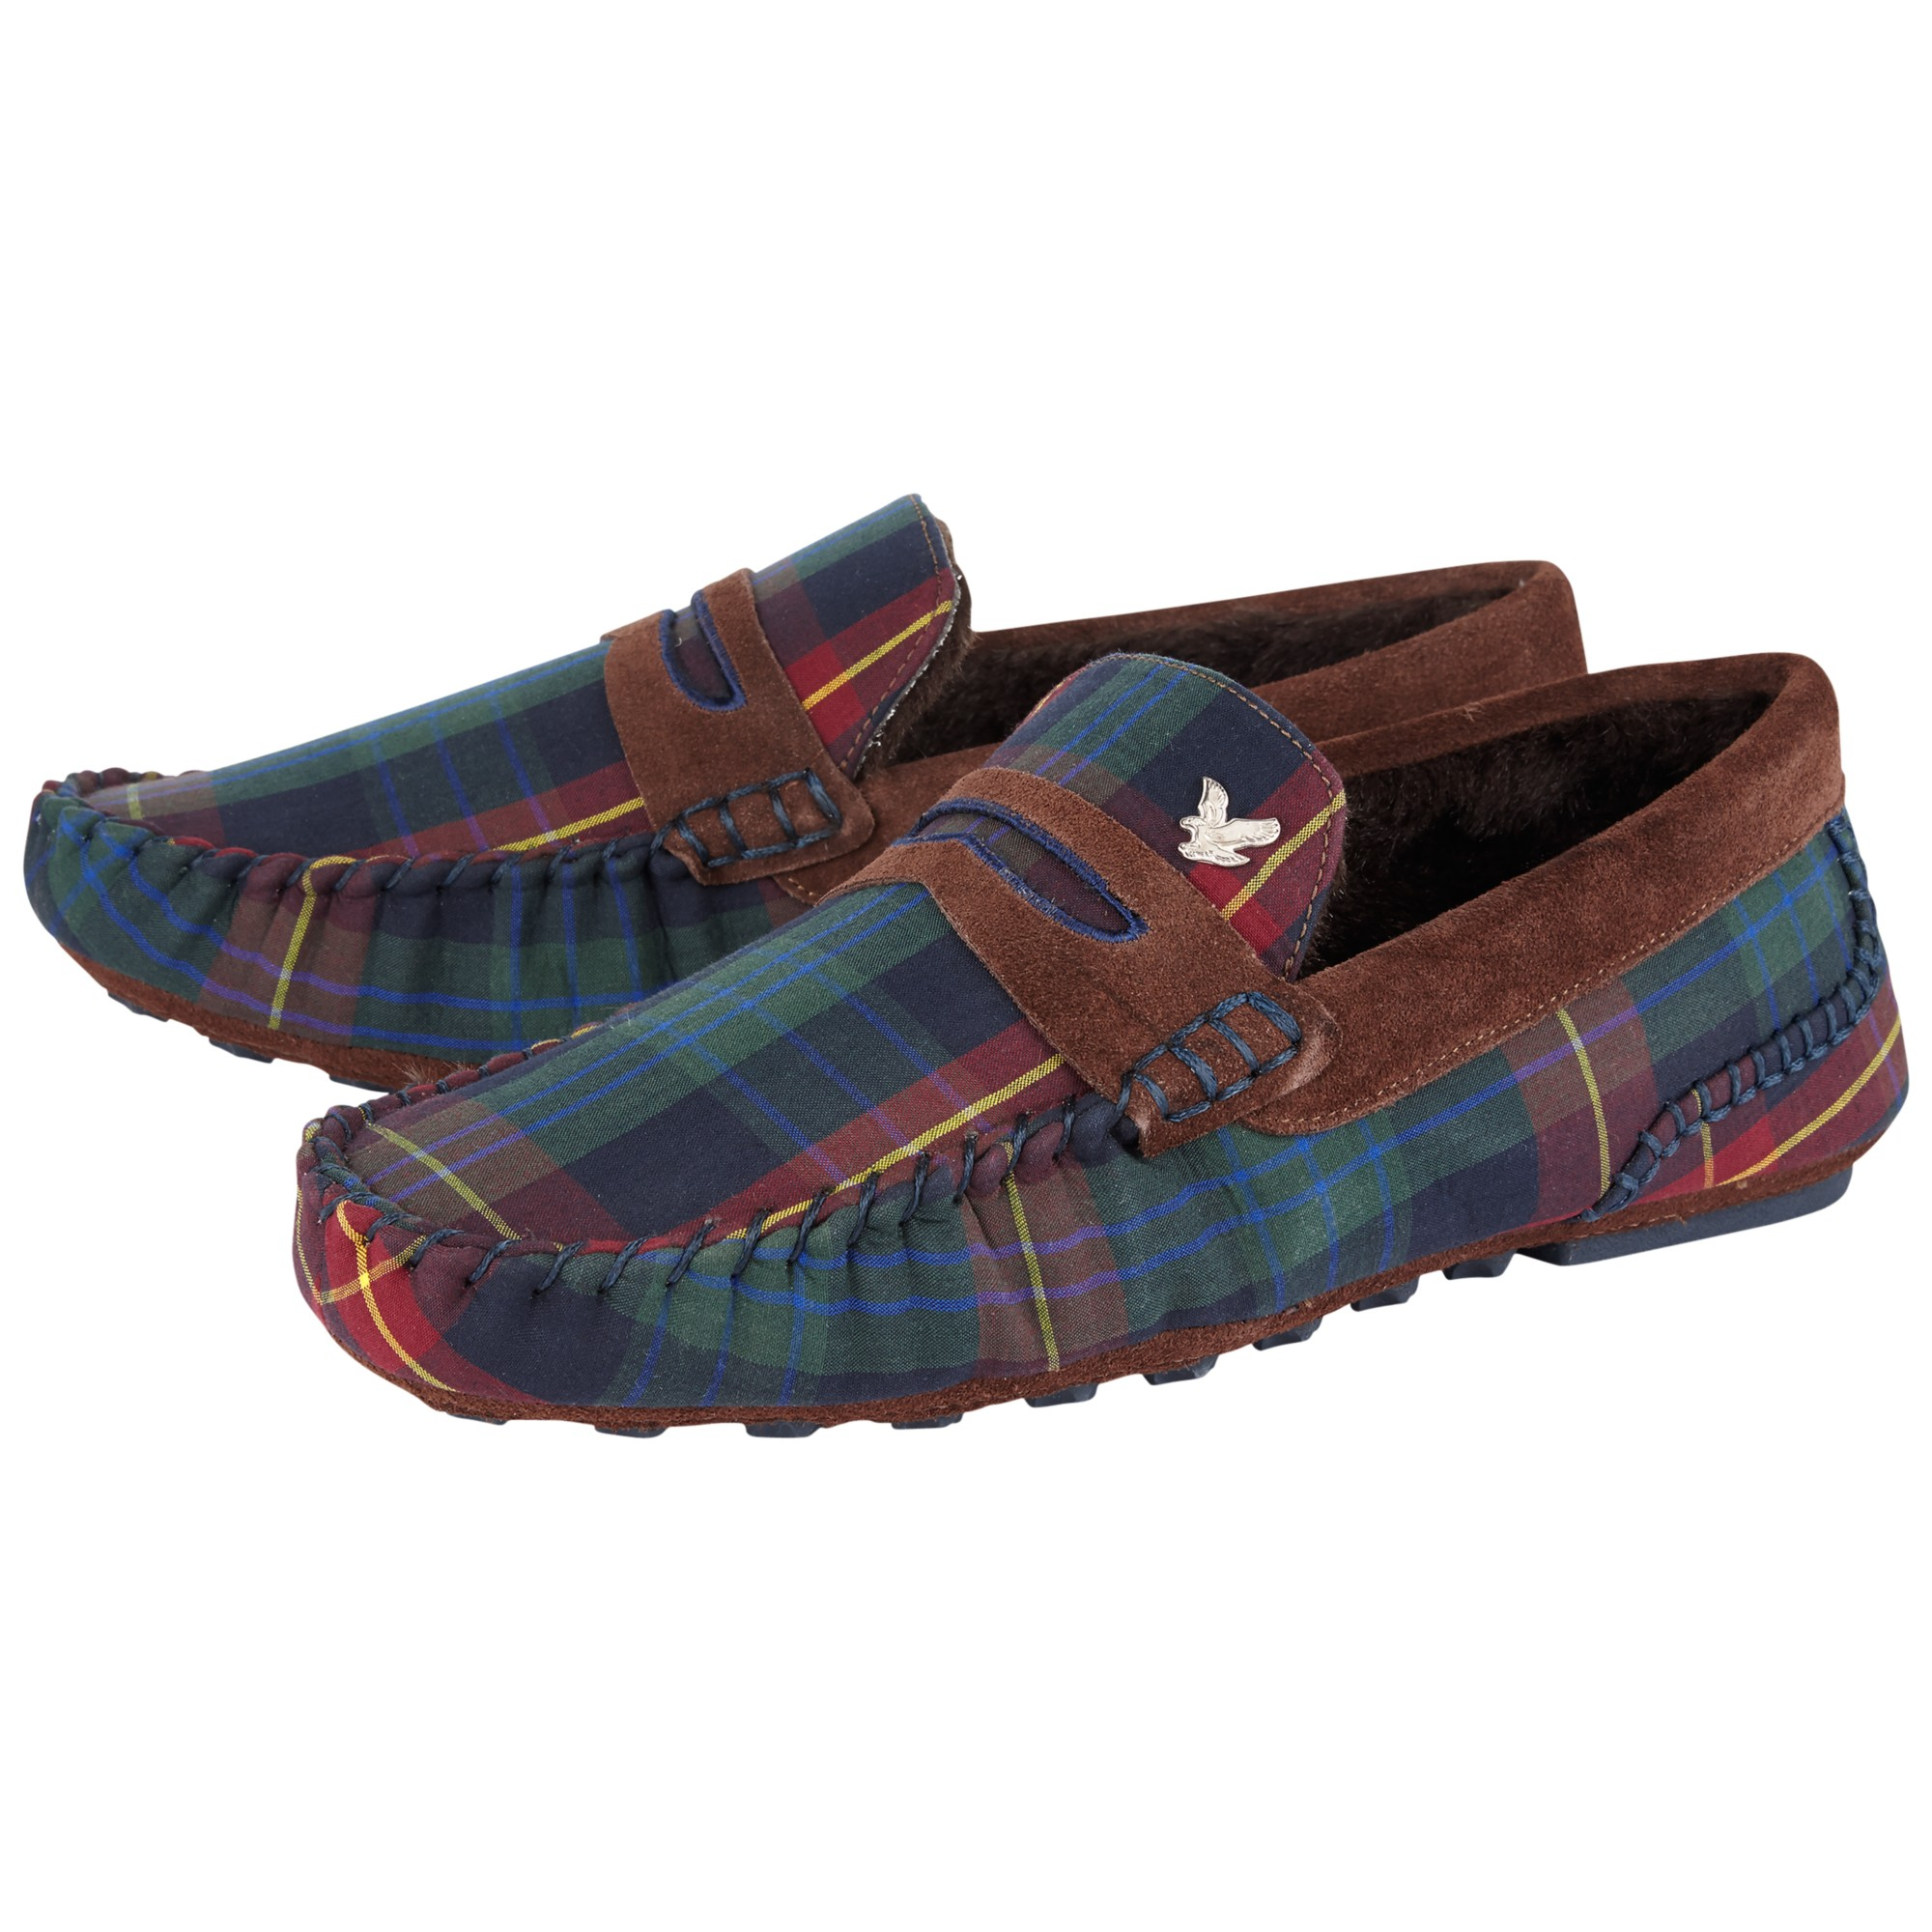 scotts slippers - 28 images - hawaii s shoes sale, s type ...